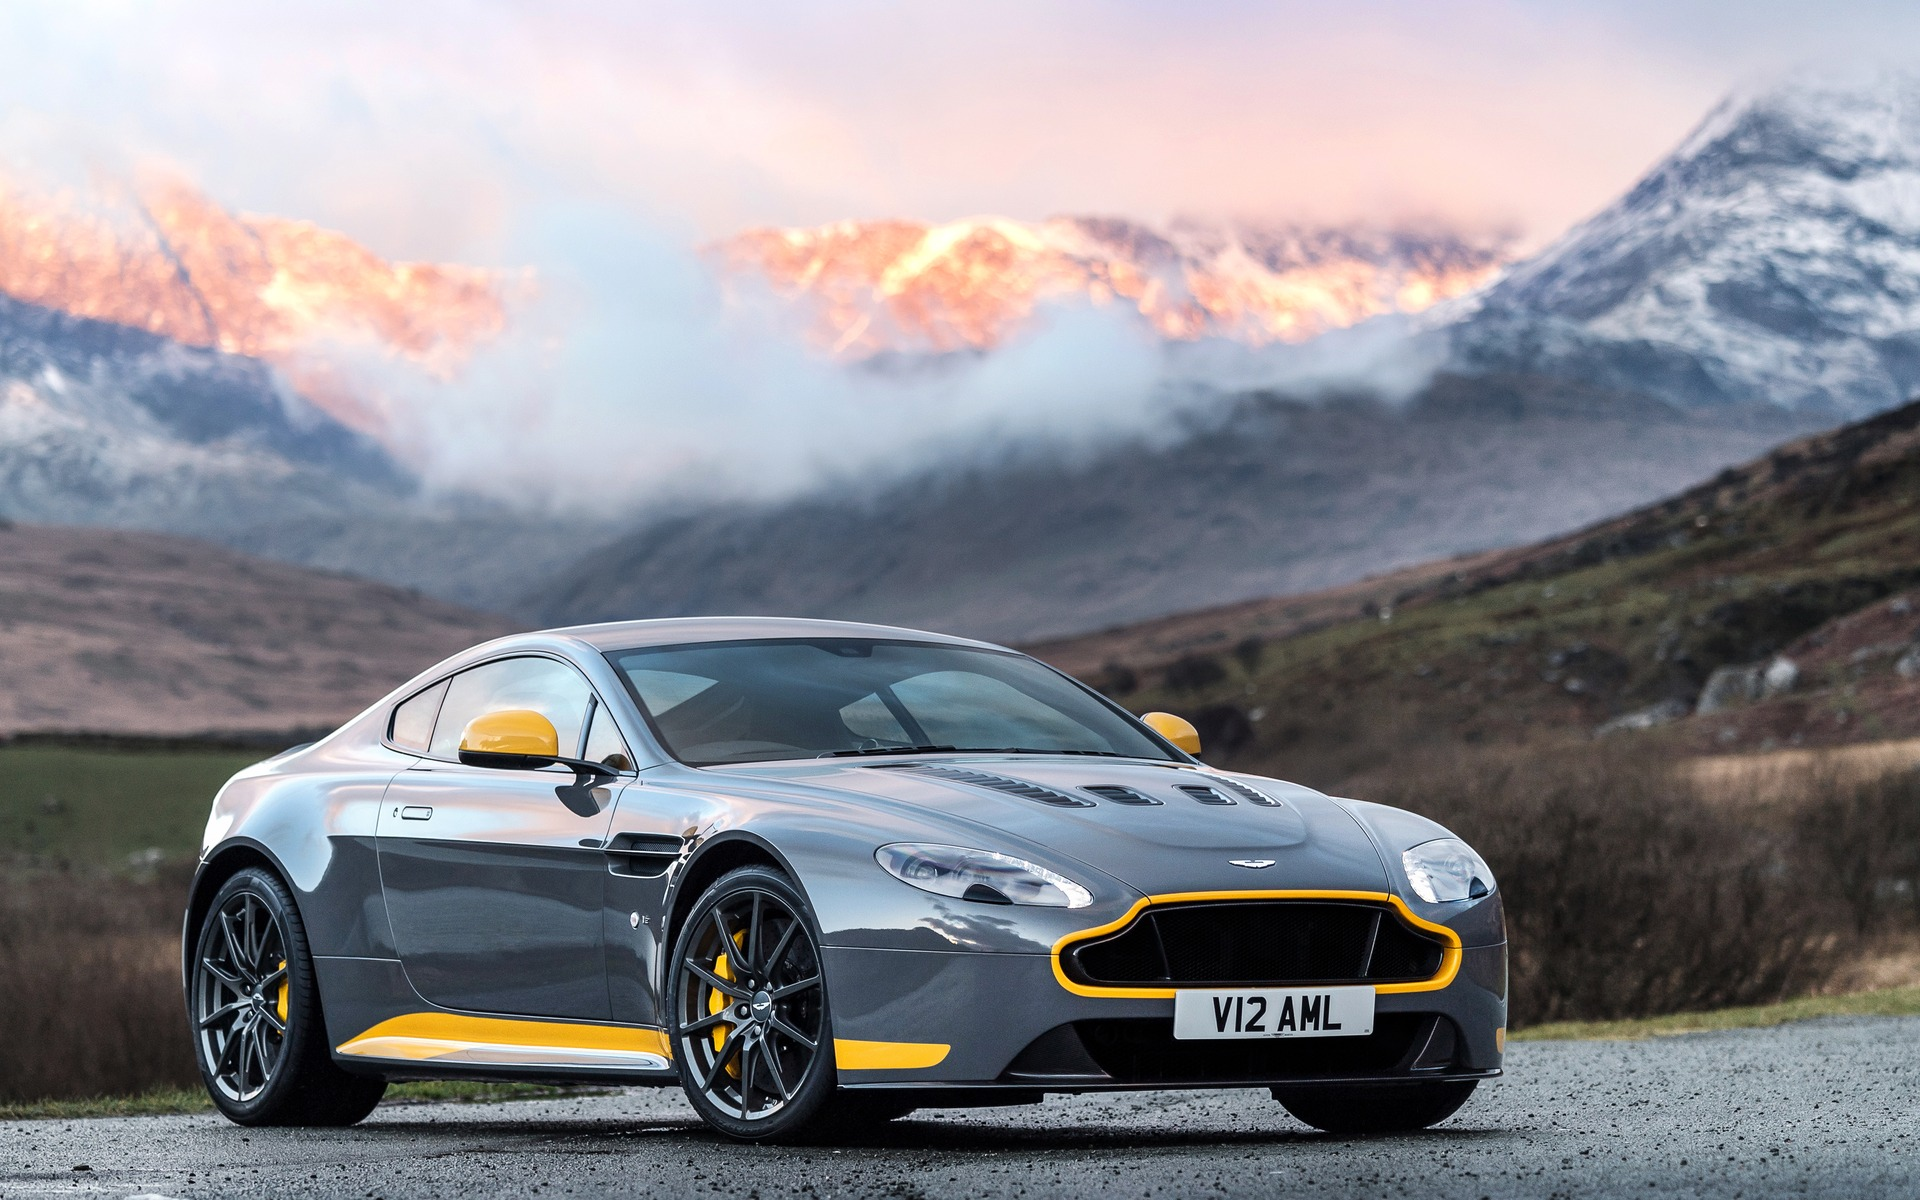 2017 aston martin vantage v12 coupe s specifications the car guide. Black Bedroom Furniture Sets. Home Design Ideas